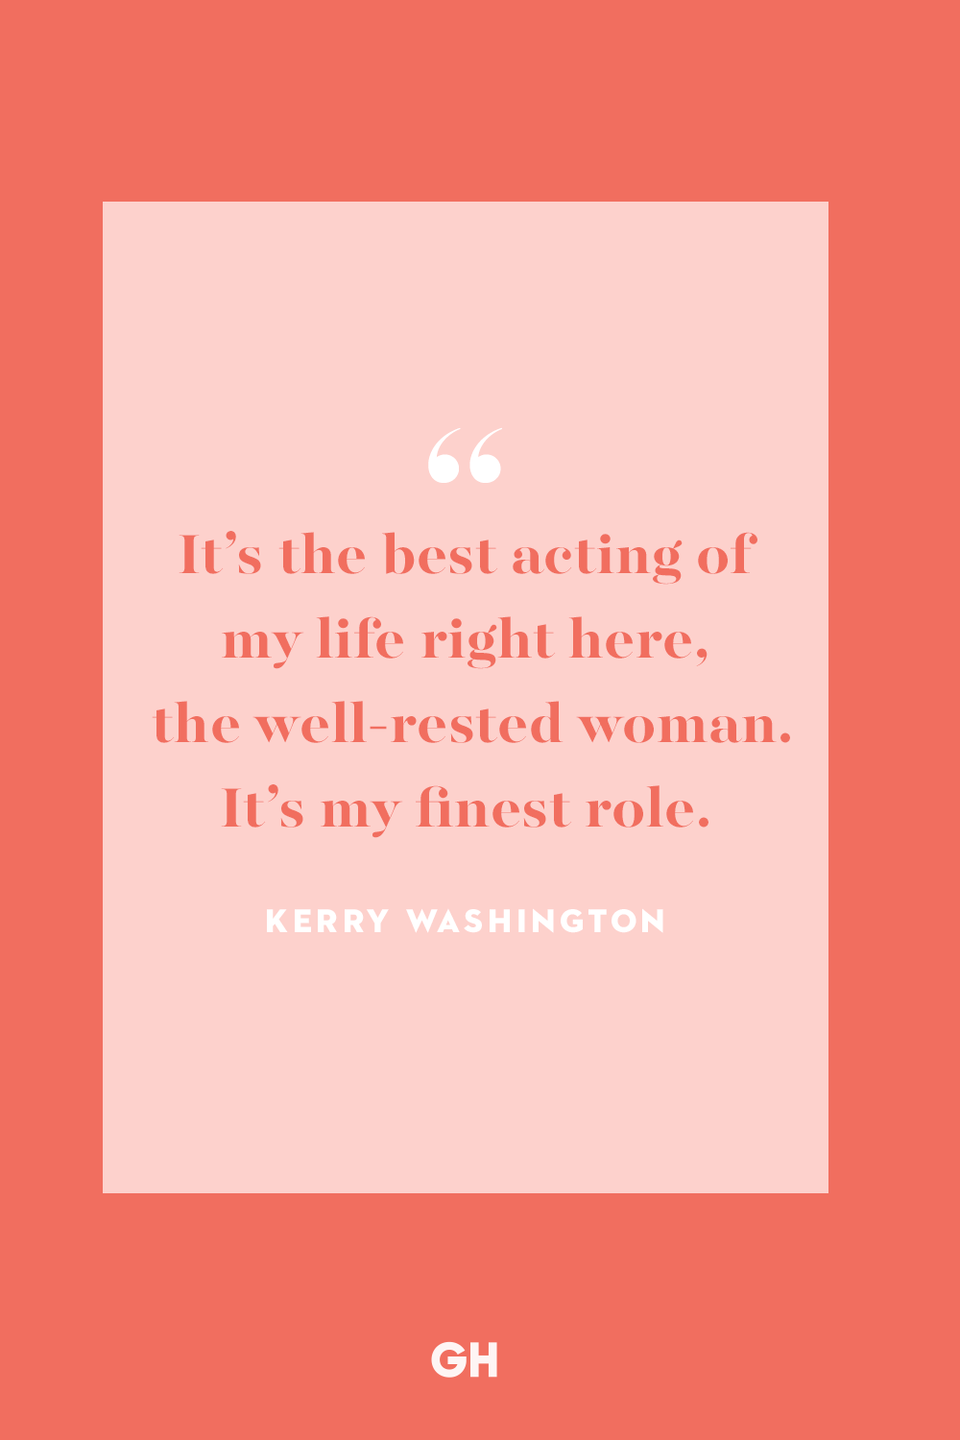 """<p>It's the best acting of my life right here, the well-rested woman. It's my finest role.</p><p><strong>RELATED:</strong> <a href=""""https://www.goodhousekeeping.com/holidays/mothers-day/g4244/mothers-day-quotes/"""" rel=""""nofollow noopener"""" target=""""_blank"""" data-ylk=""""slk:Mother's Day Quotes That Help Express How Important She Is"""" class=""""link rapid-noclick-resp"""">Mother's Day Quotes That Help Express How Important She Is</a></p>"""